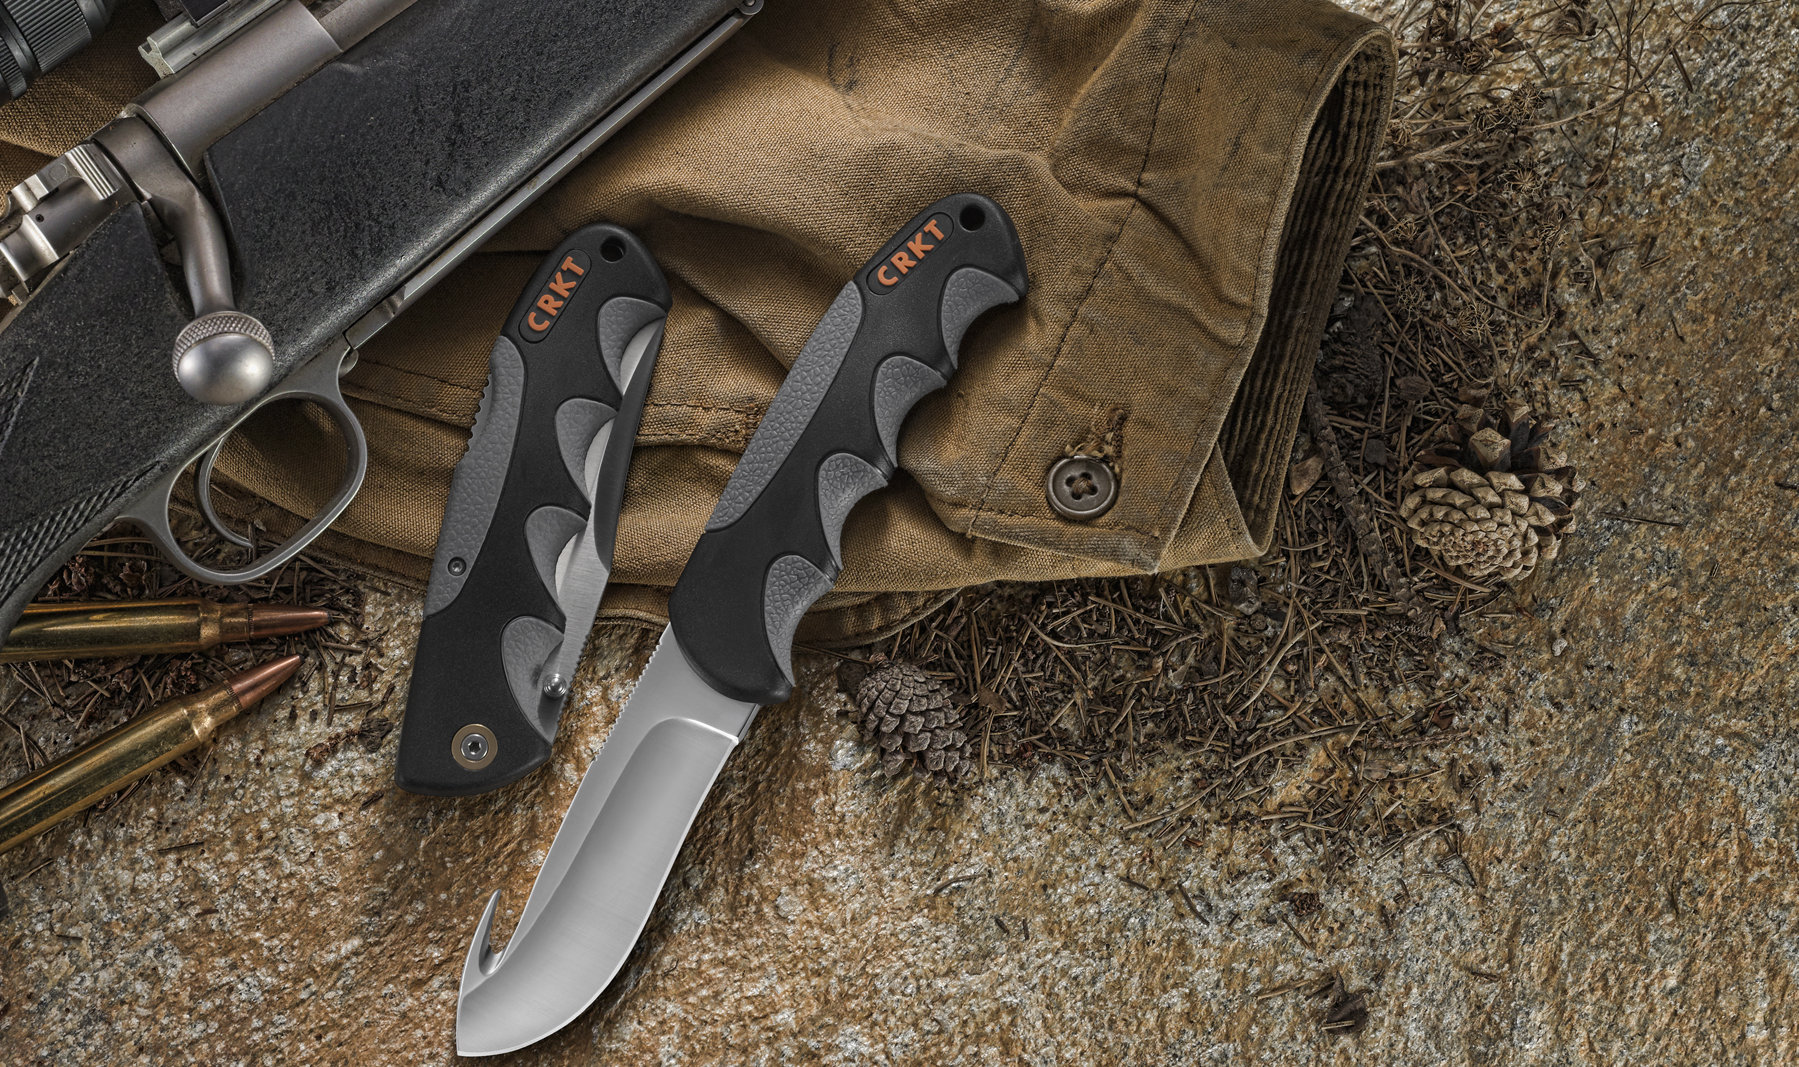 A good knife is a wise investment for the outdoor enthusiast. It is a handy, practical tool that pays for itself many times over. Whether you are a devotee of hunting, angling, hiking or any other great outdoor activity, the right knife will never let you down. But with so many brands and types to [...]